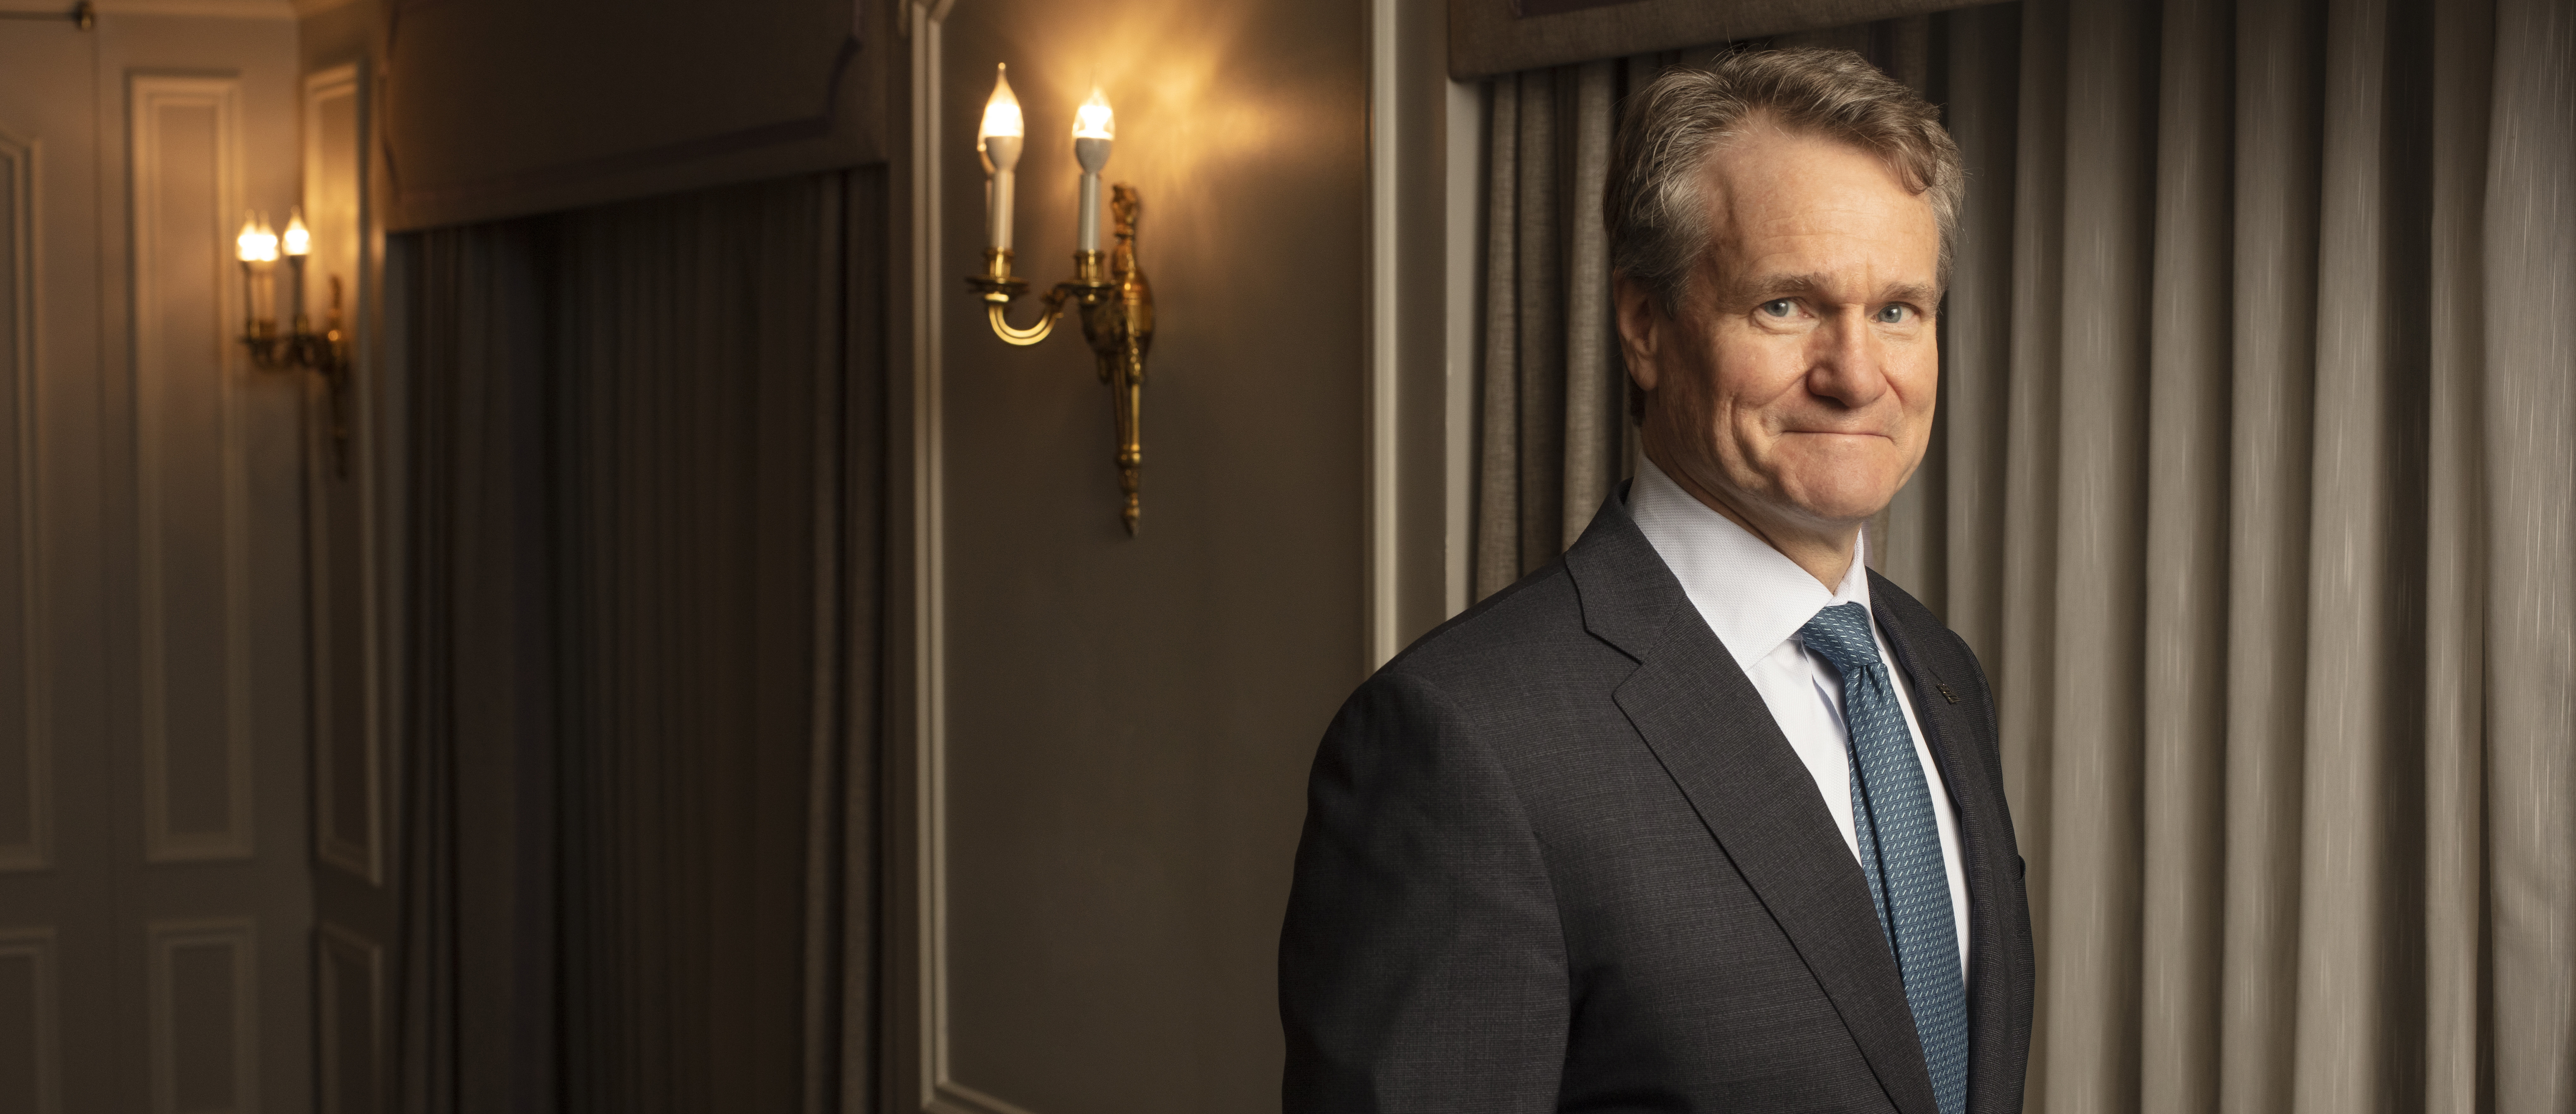 Chairman and CEO of Bank Of America, Brian Moynihan photographed for the Finanical Times in New York City.